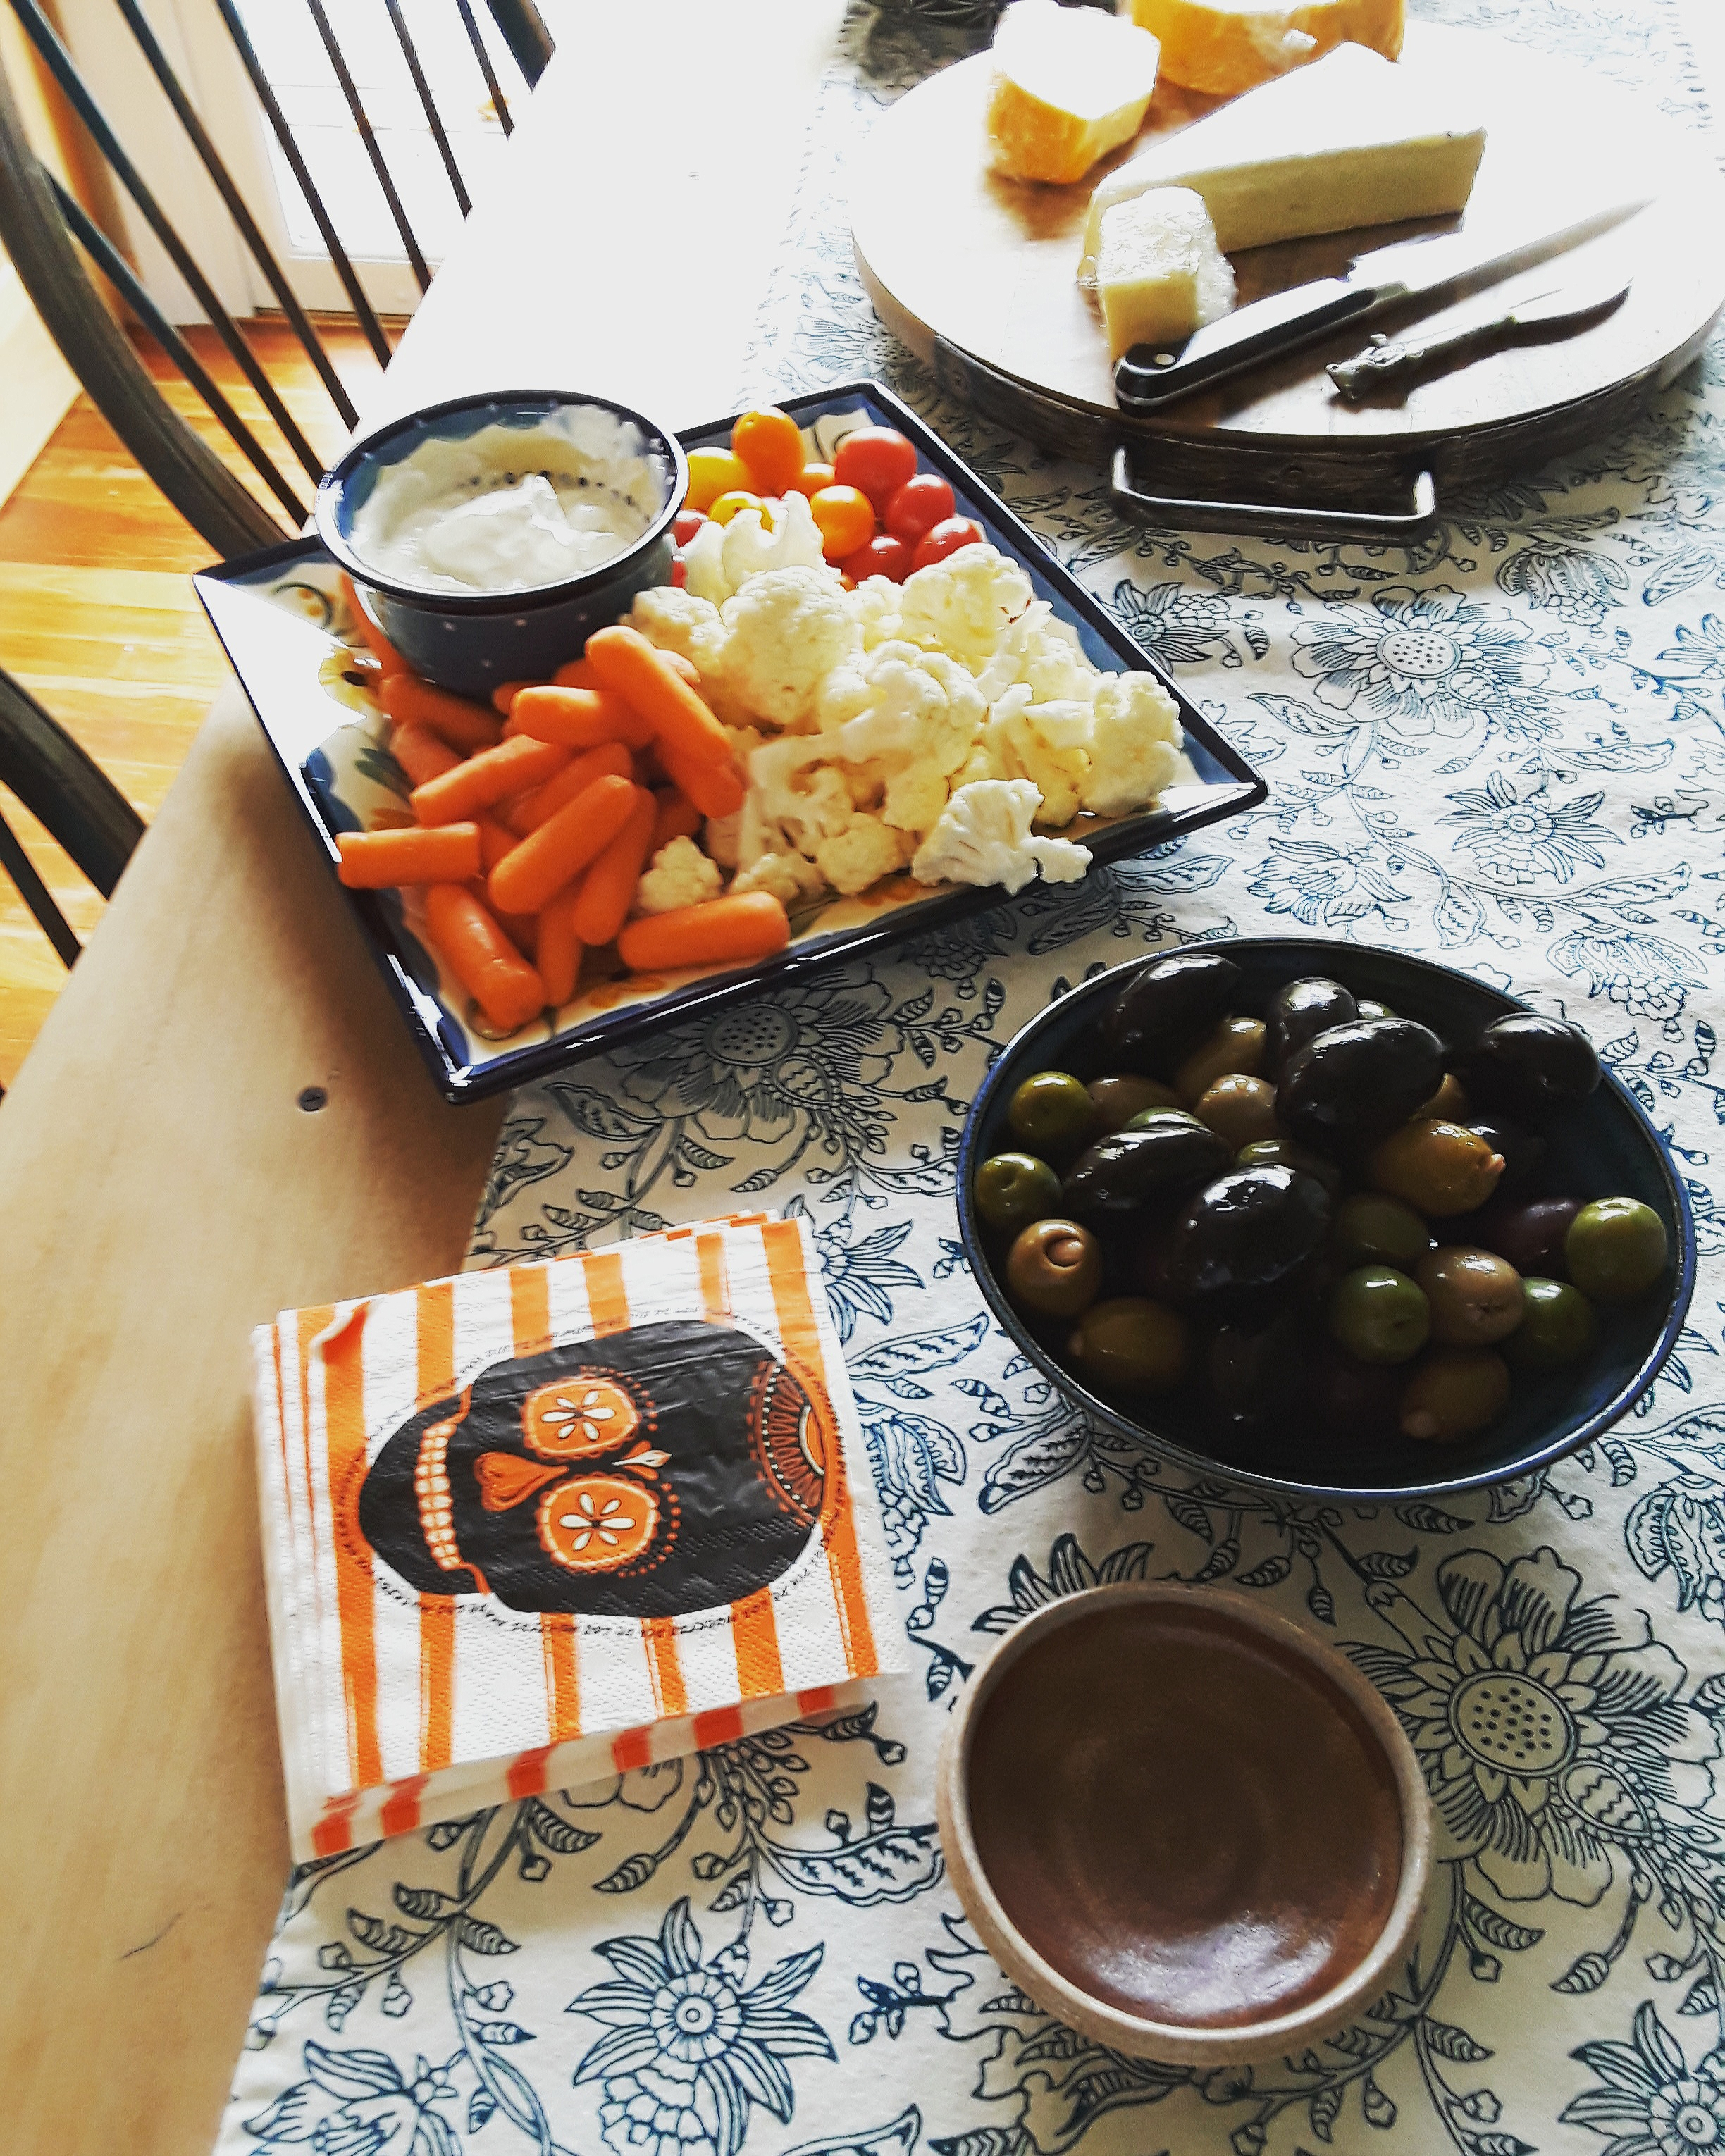 crudite, cheeses, olives, and crackers